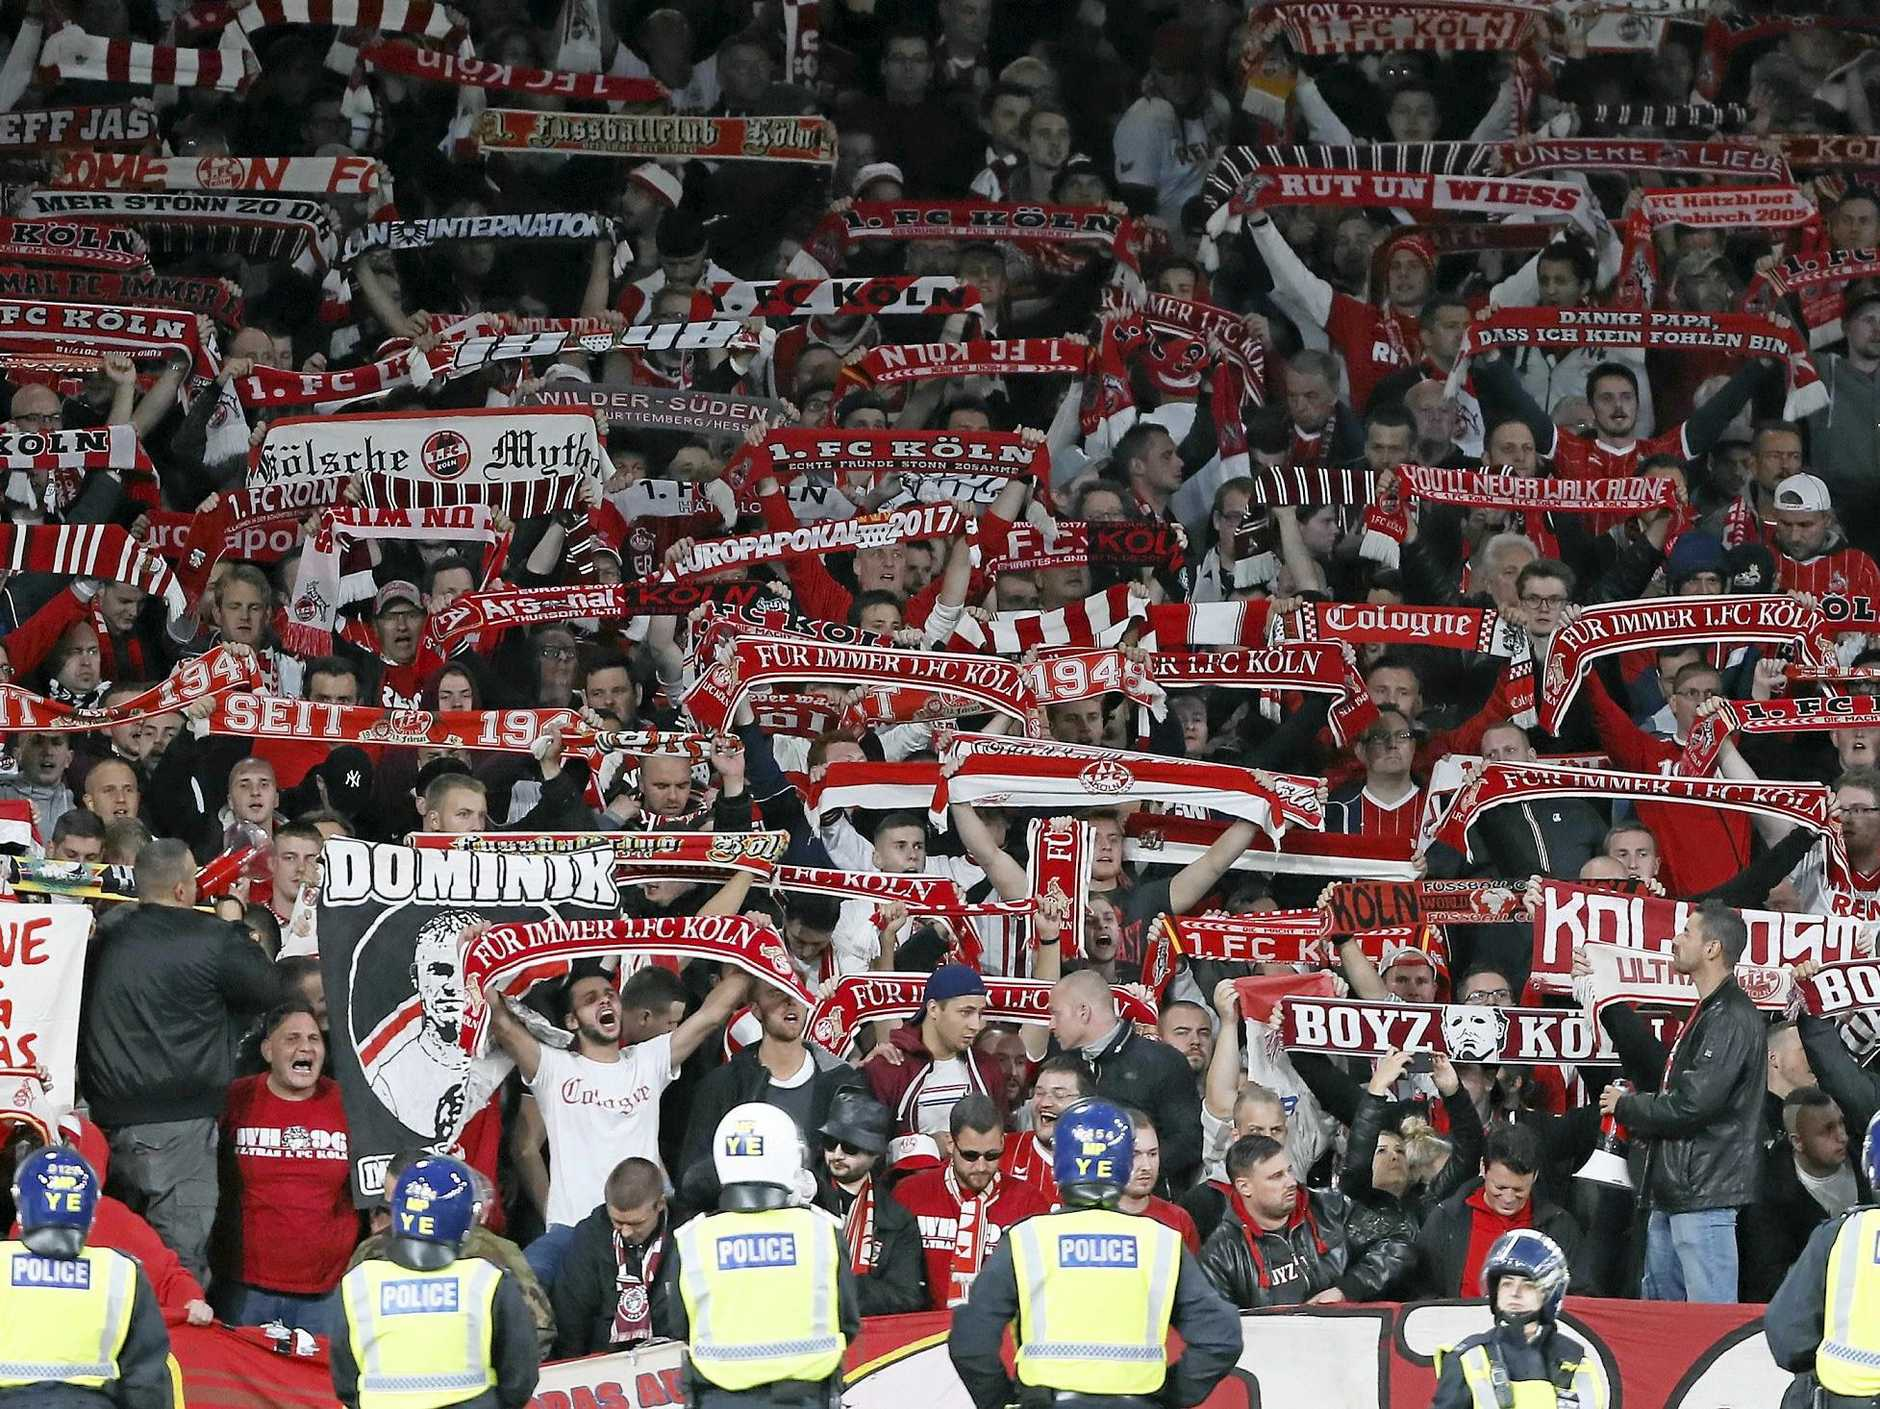 Cologne supporters cheer during the Europa League Group H soccer match against Arsenal.